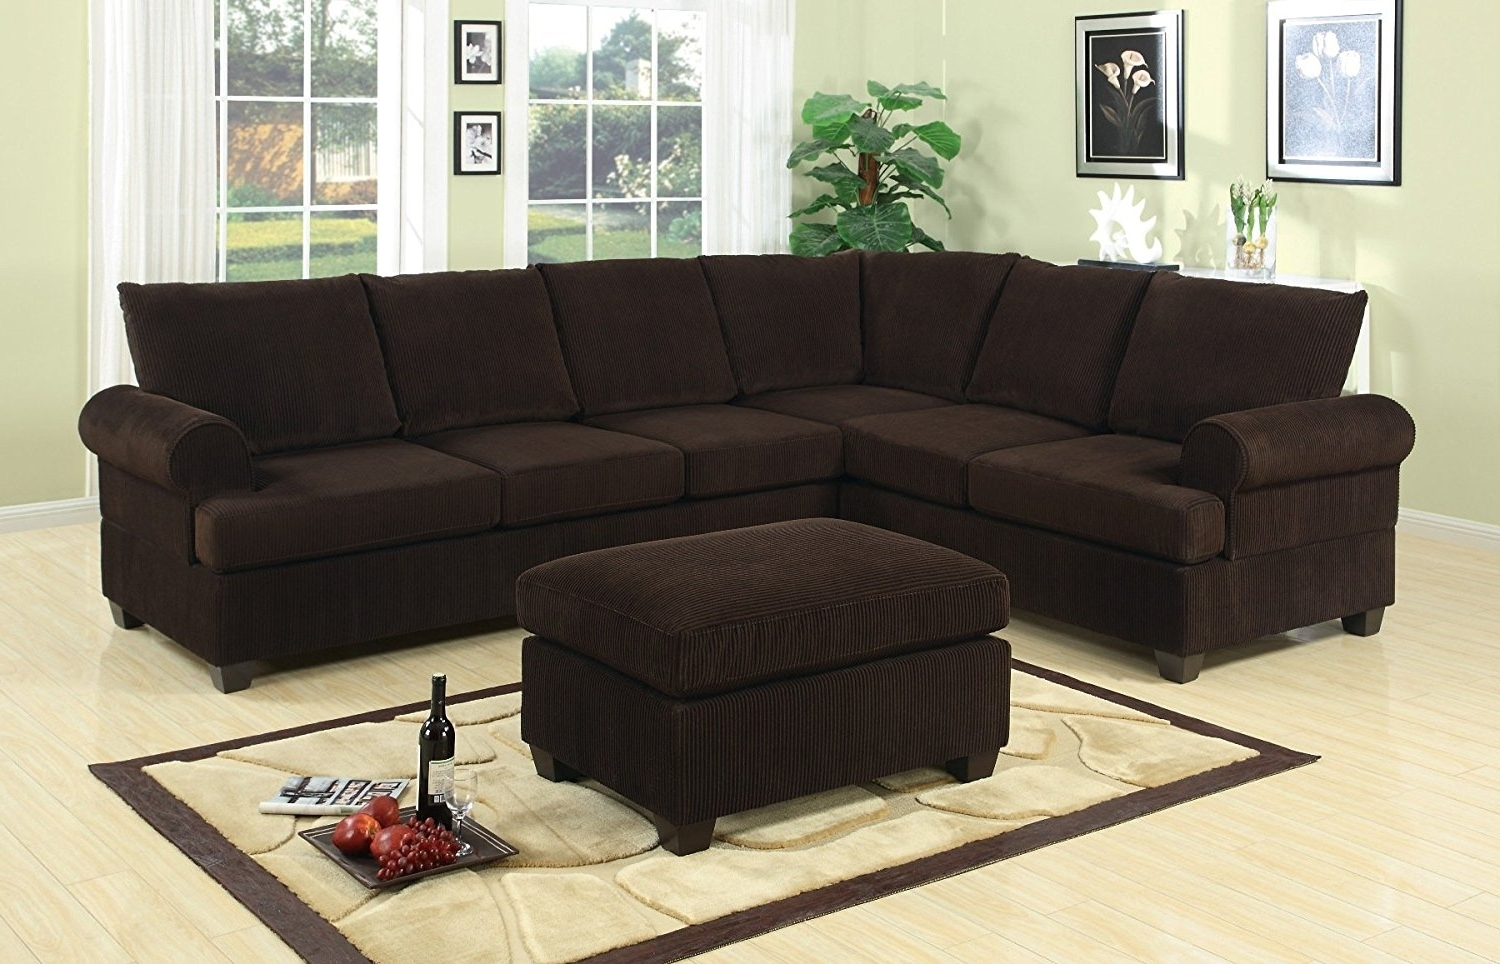 Fashionable Jacksonville Fl Sectional Sofas In Sectional Sofas Jacksonville Fl – Home And Textiles (View 6 of 20)